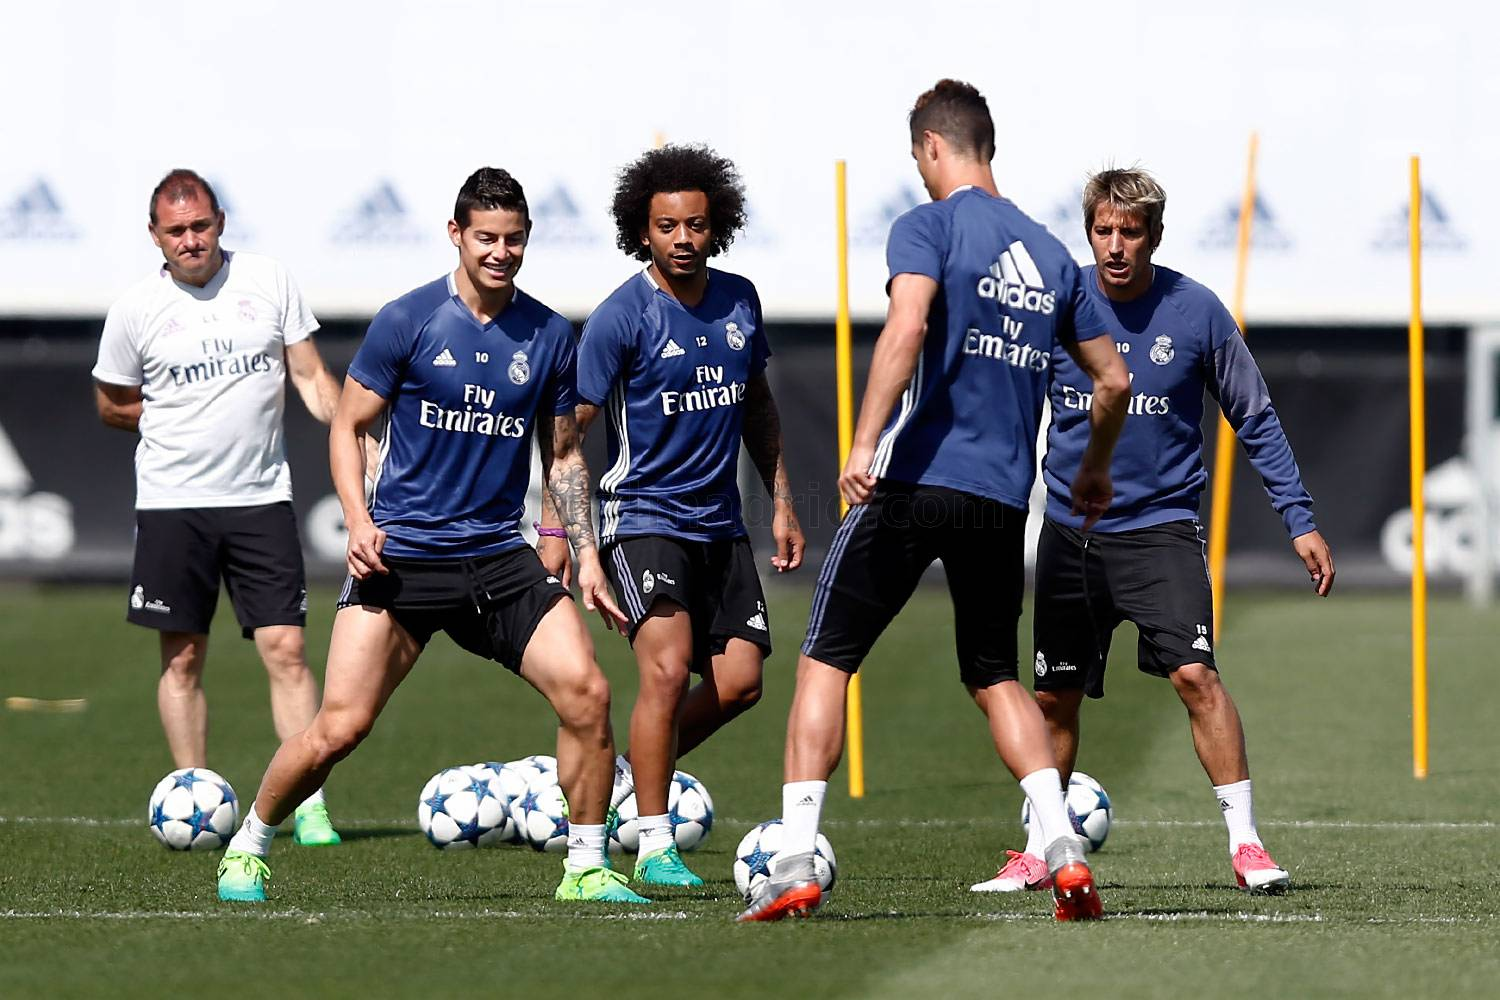 Real Madrid - Entrenamiento del Real Madrid - 08-05-2017